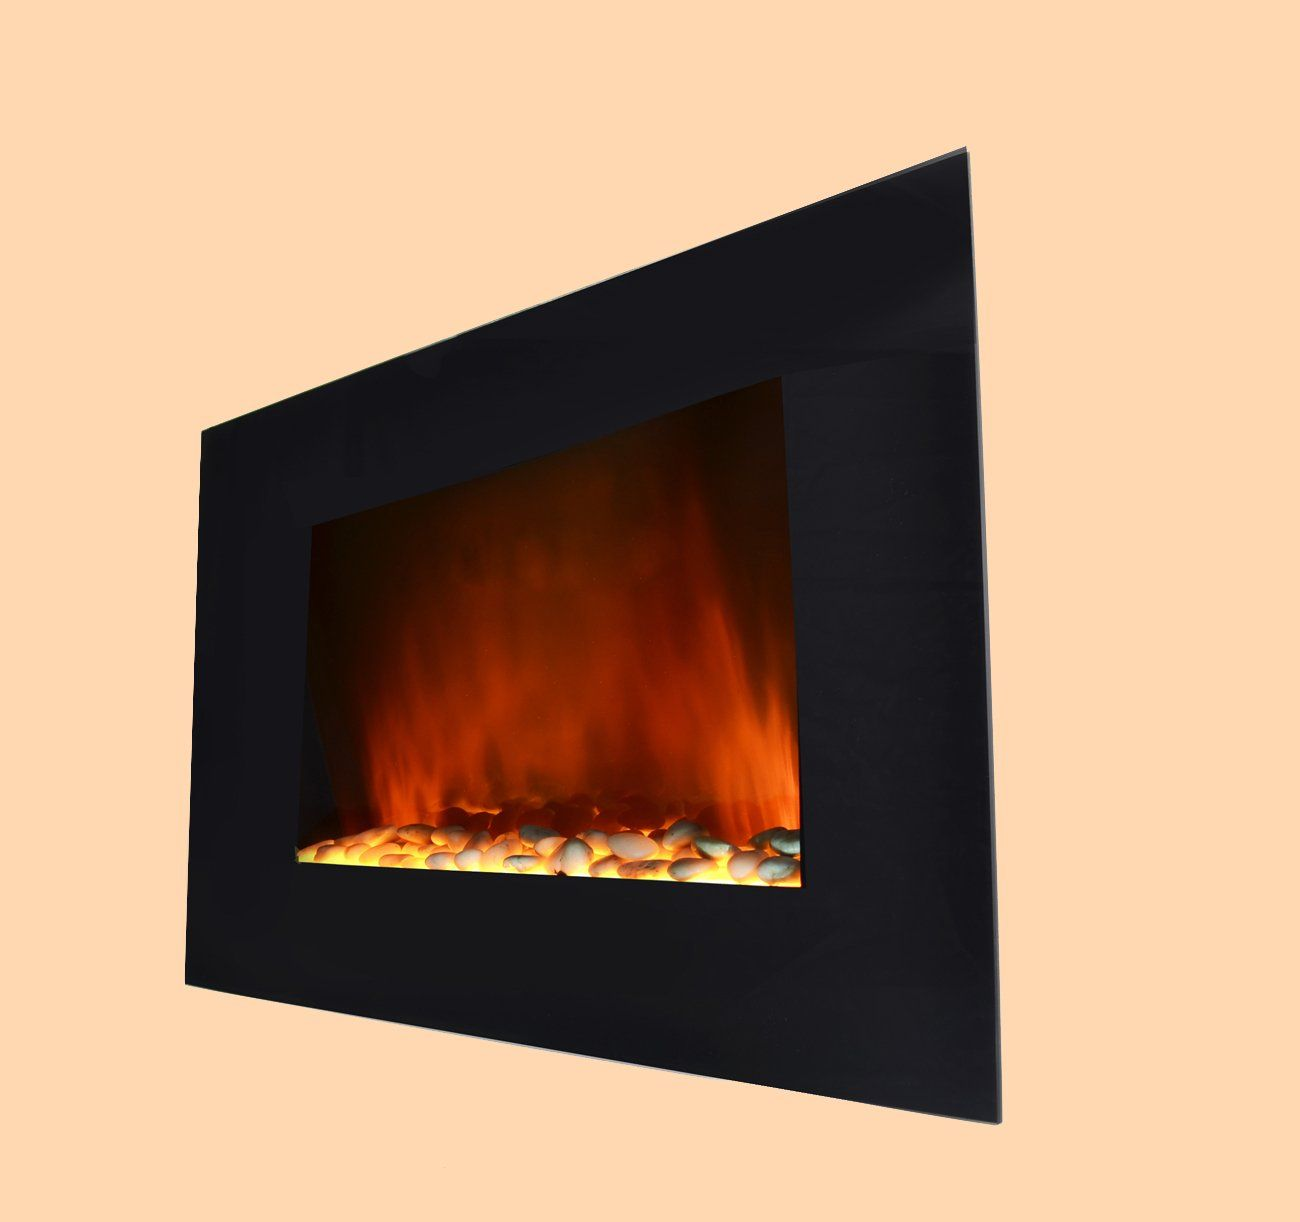 Amazon Com 36 Inch Wall Mount Modern Space Heater Electric Fireplace Heater Flat Tempered Glass W Electric Fireplace Fireplace Wall Mount Electric Fireplace